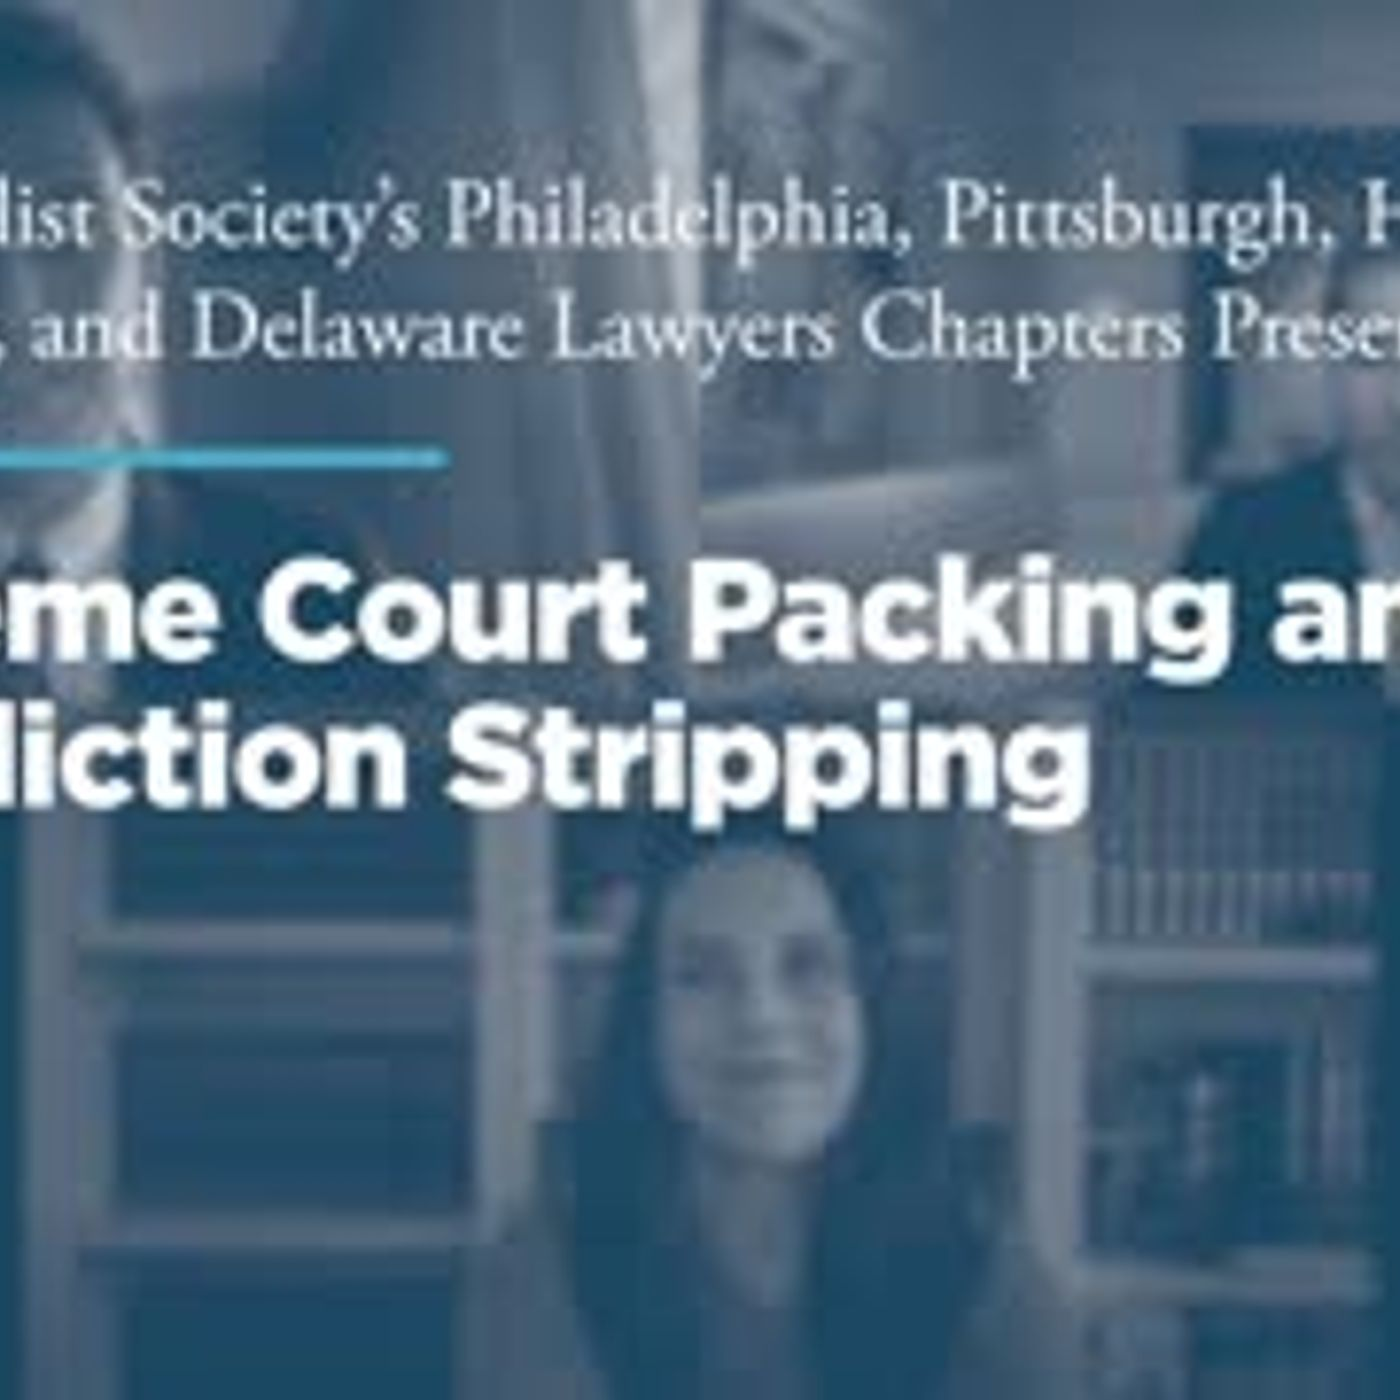 Supreme Court Packing and Jurisdiction Stripping: A Debate